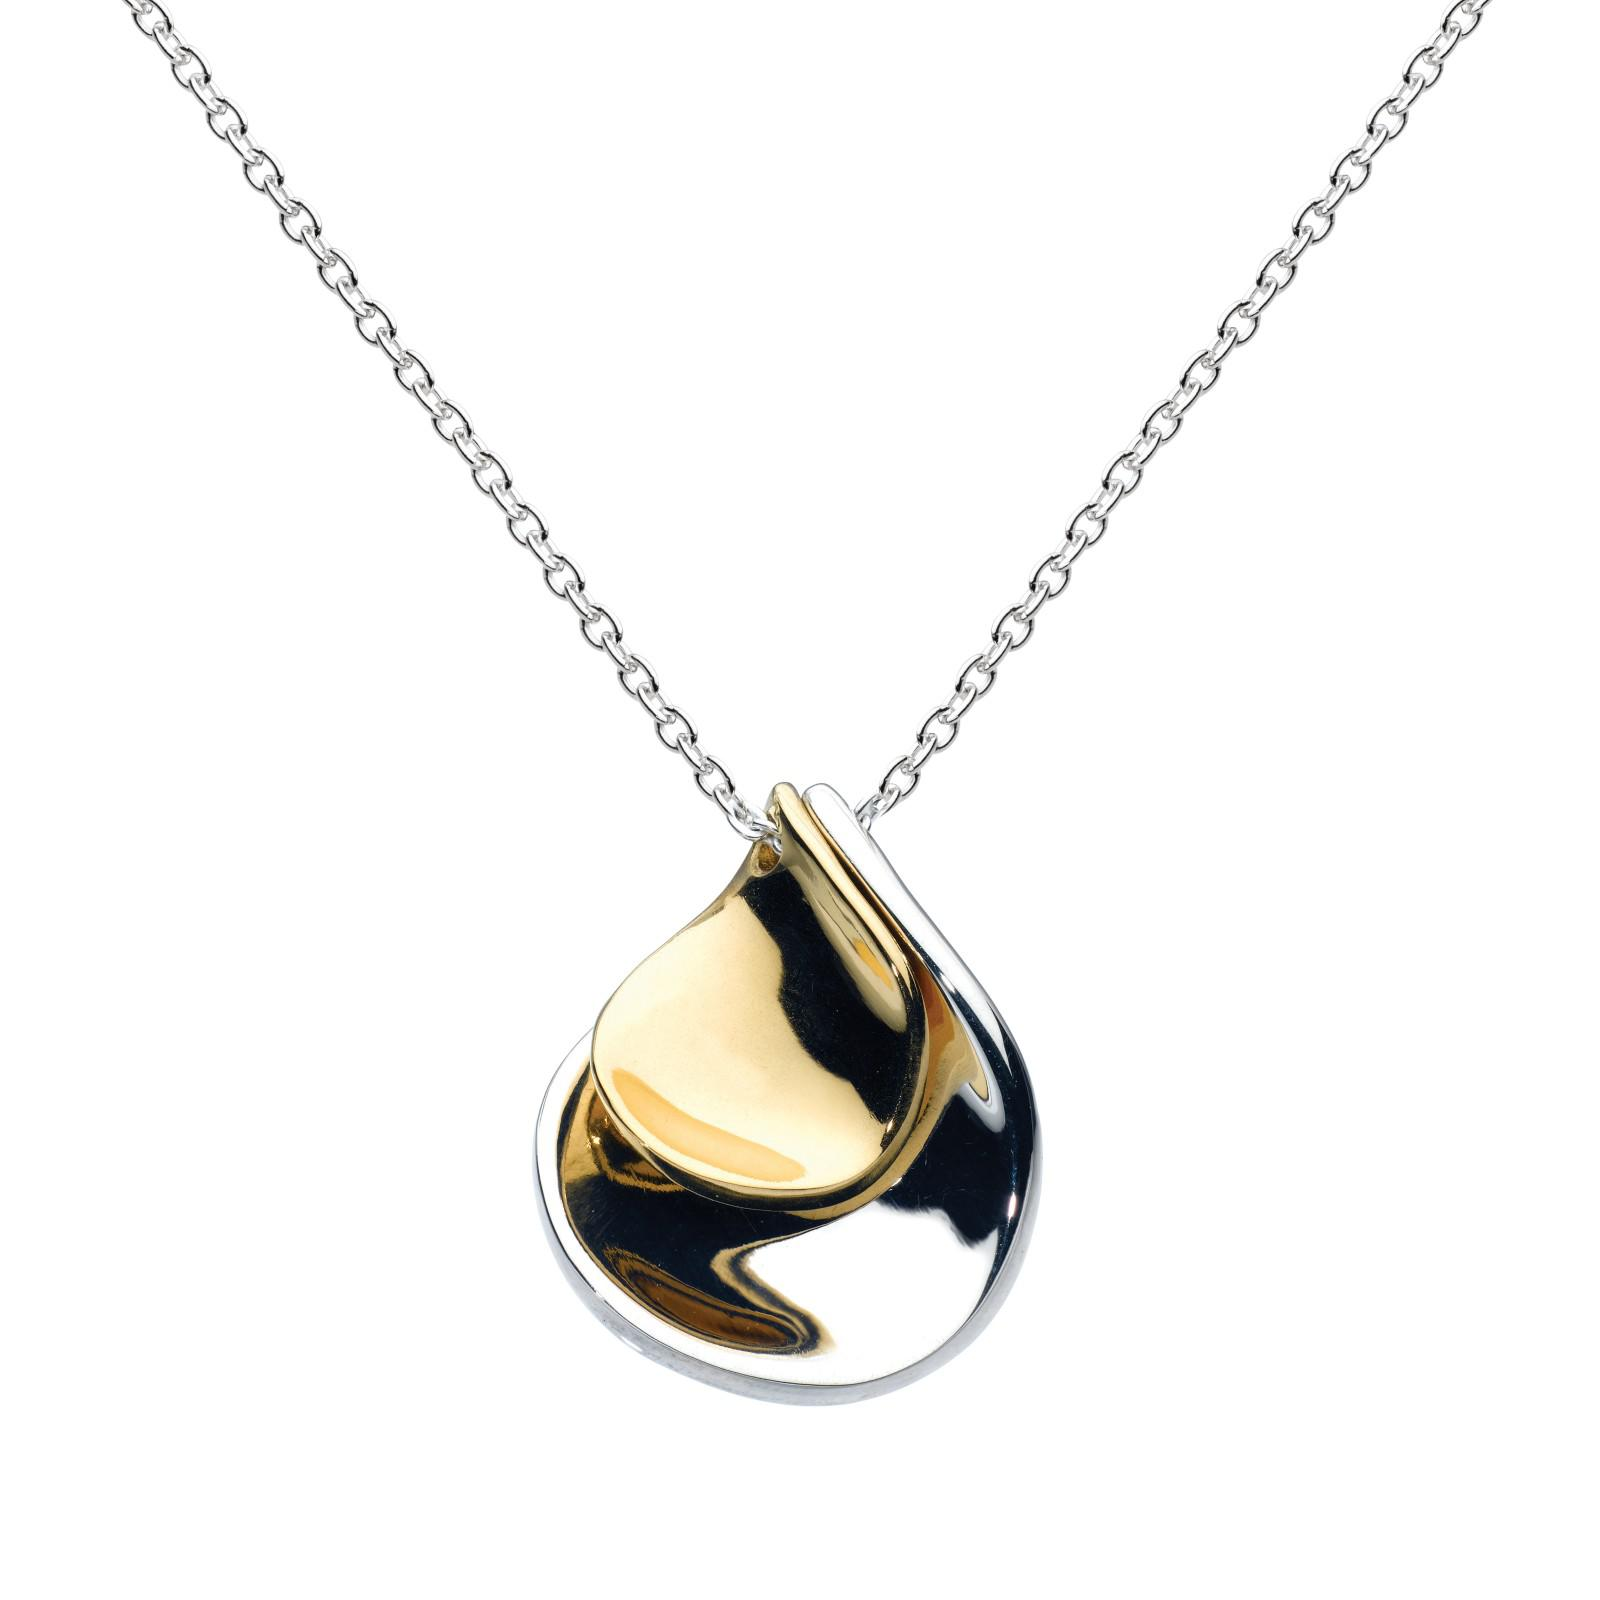 Kit Heath Double Petal Sterling Silver 18ct Gold Plated Pendant in Metallic